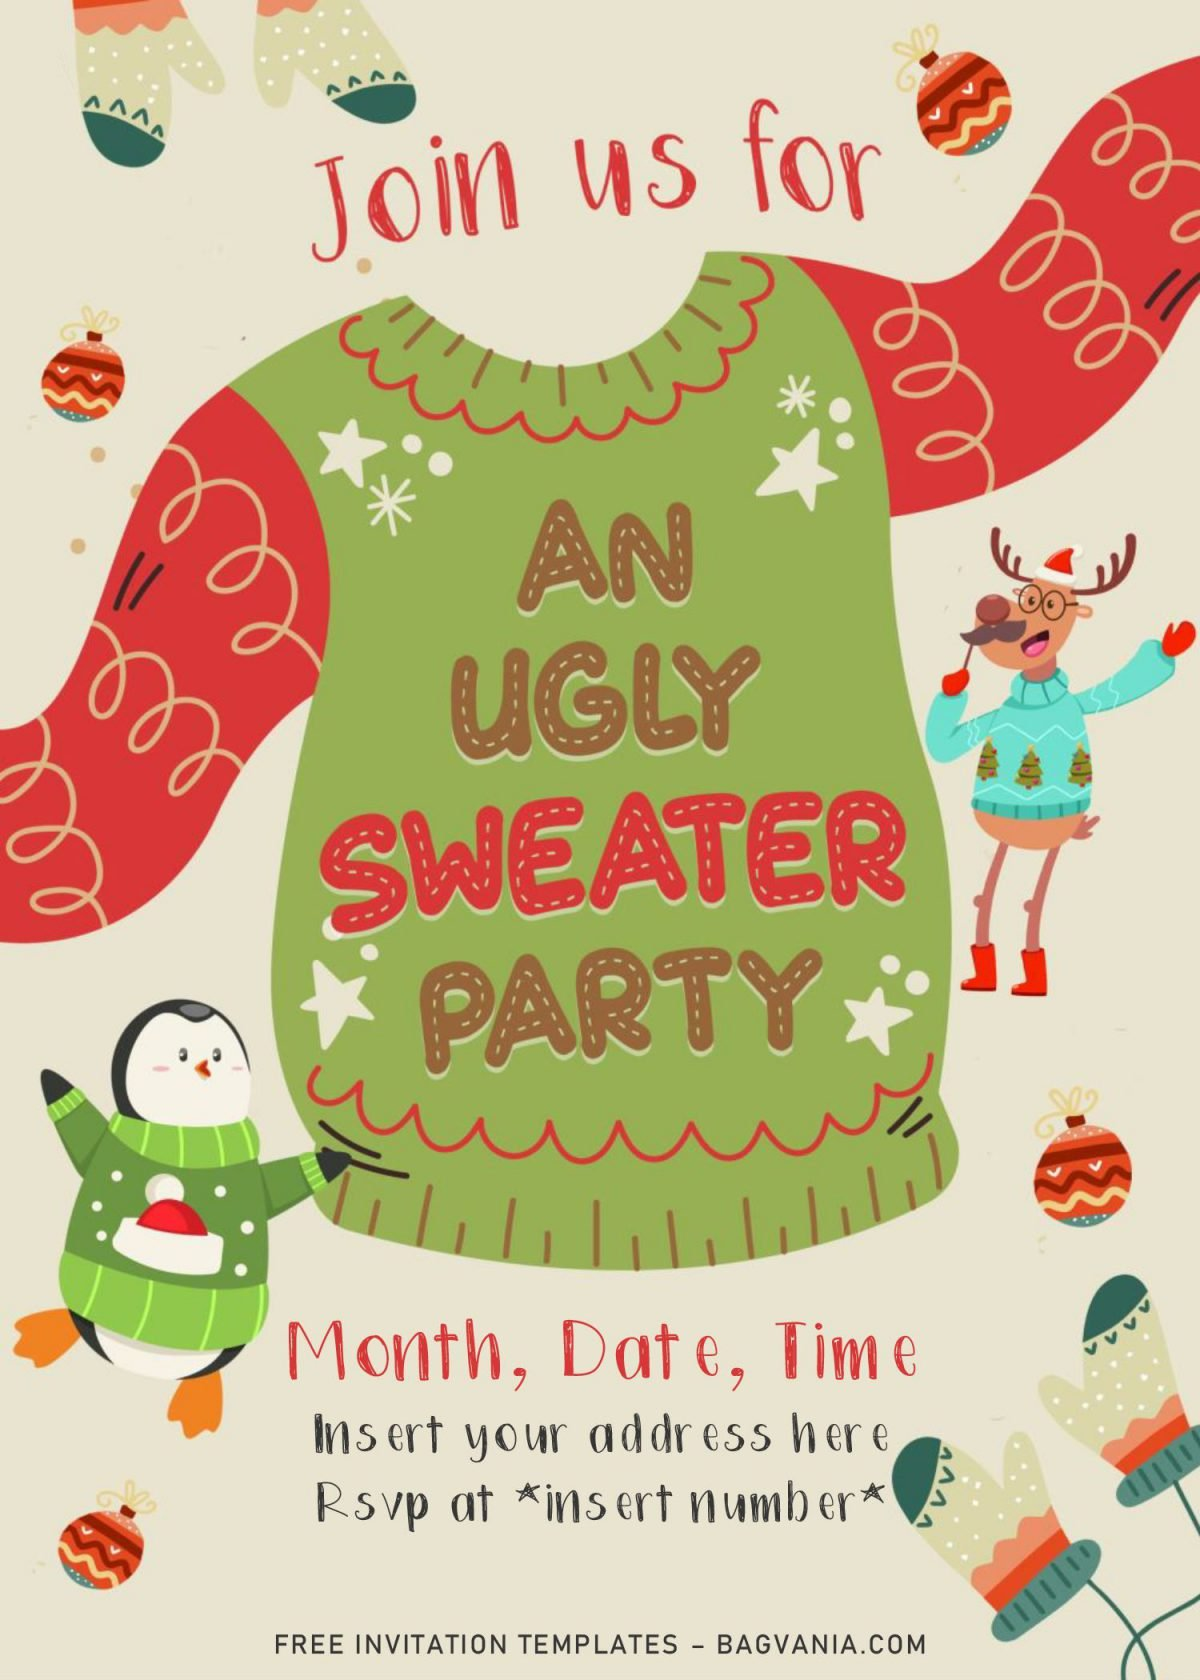 Free Winter Ugly Sweater Birthday Party Invitation Templates For Word and has portrait orientation card design